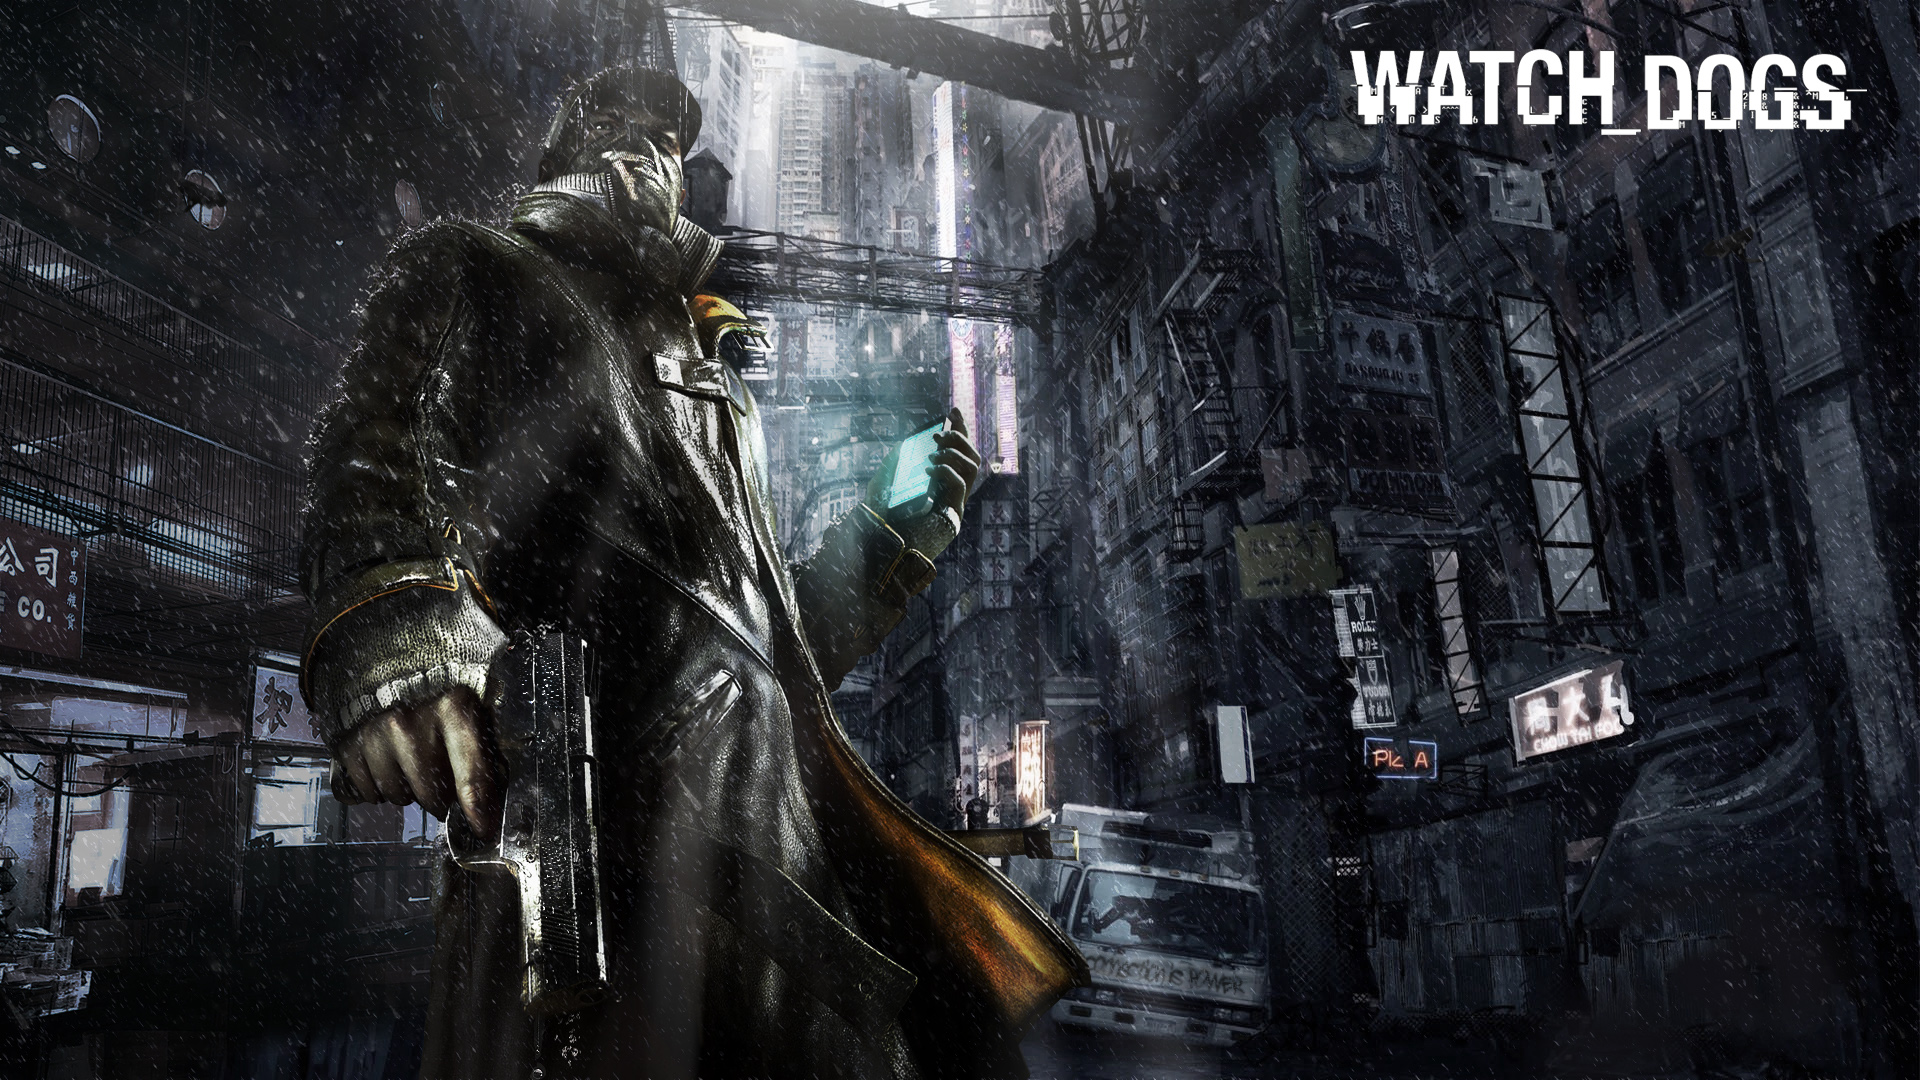 watch_dogs_game-HD